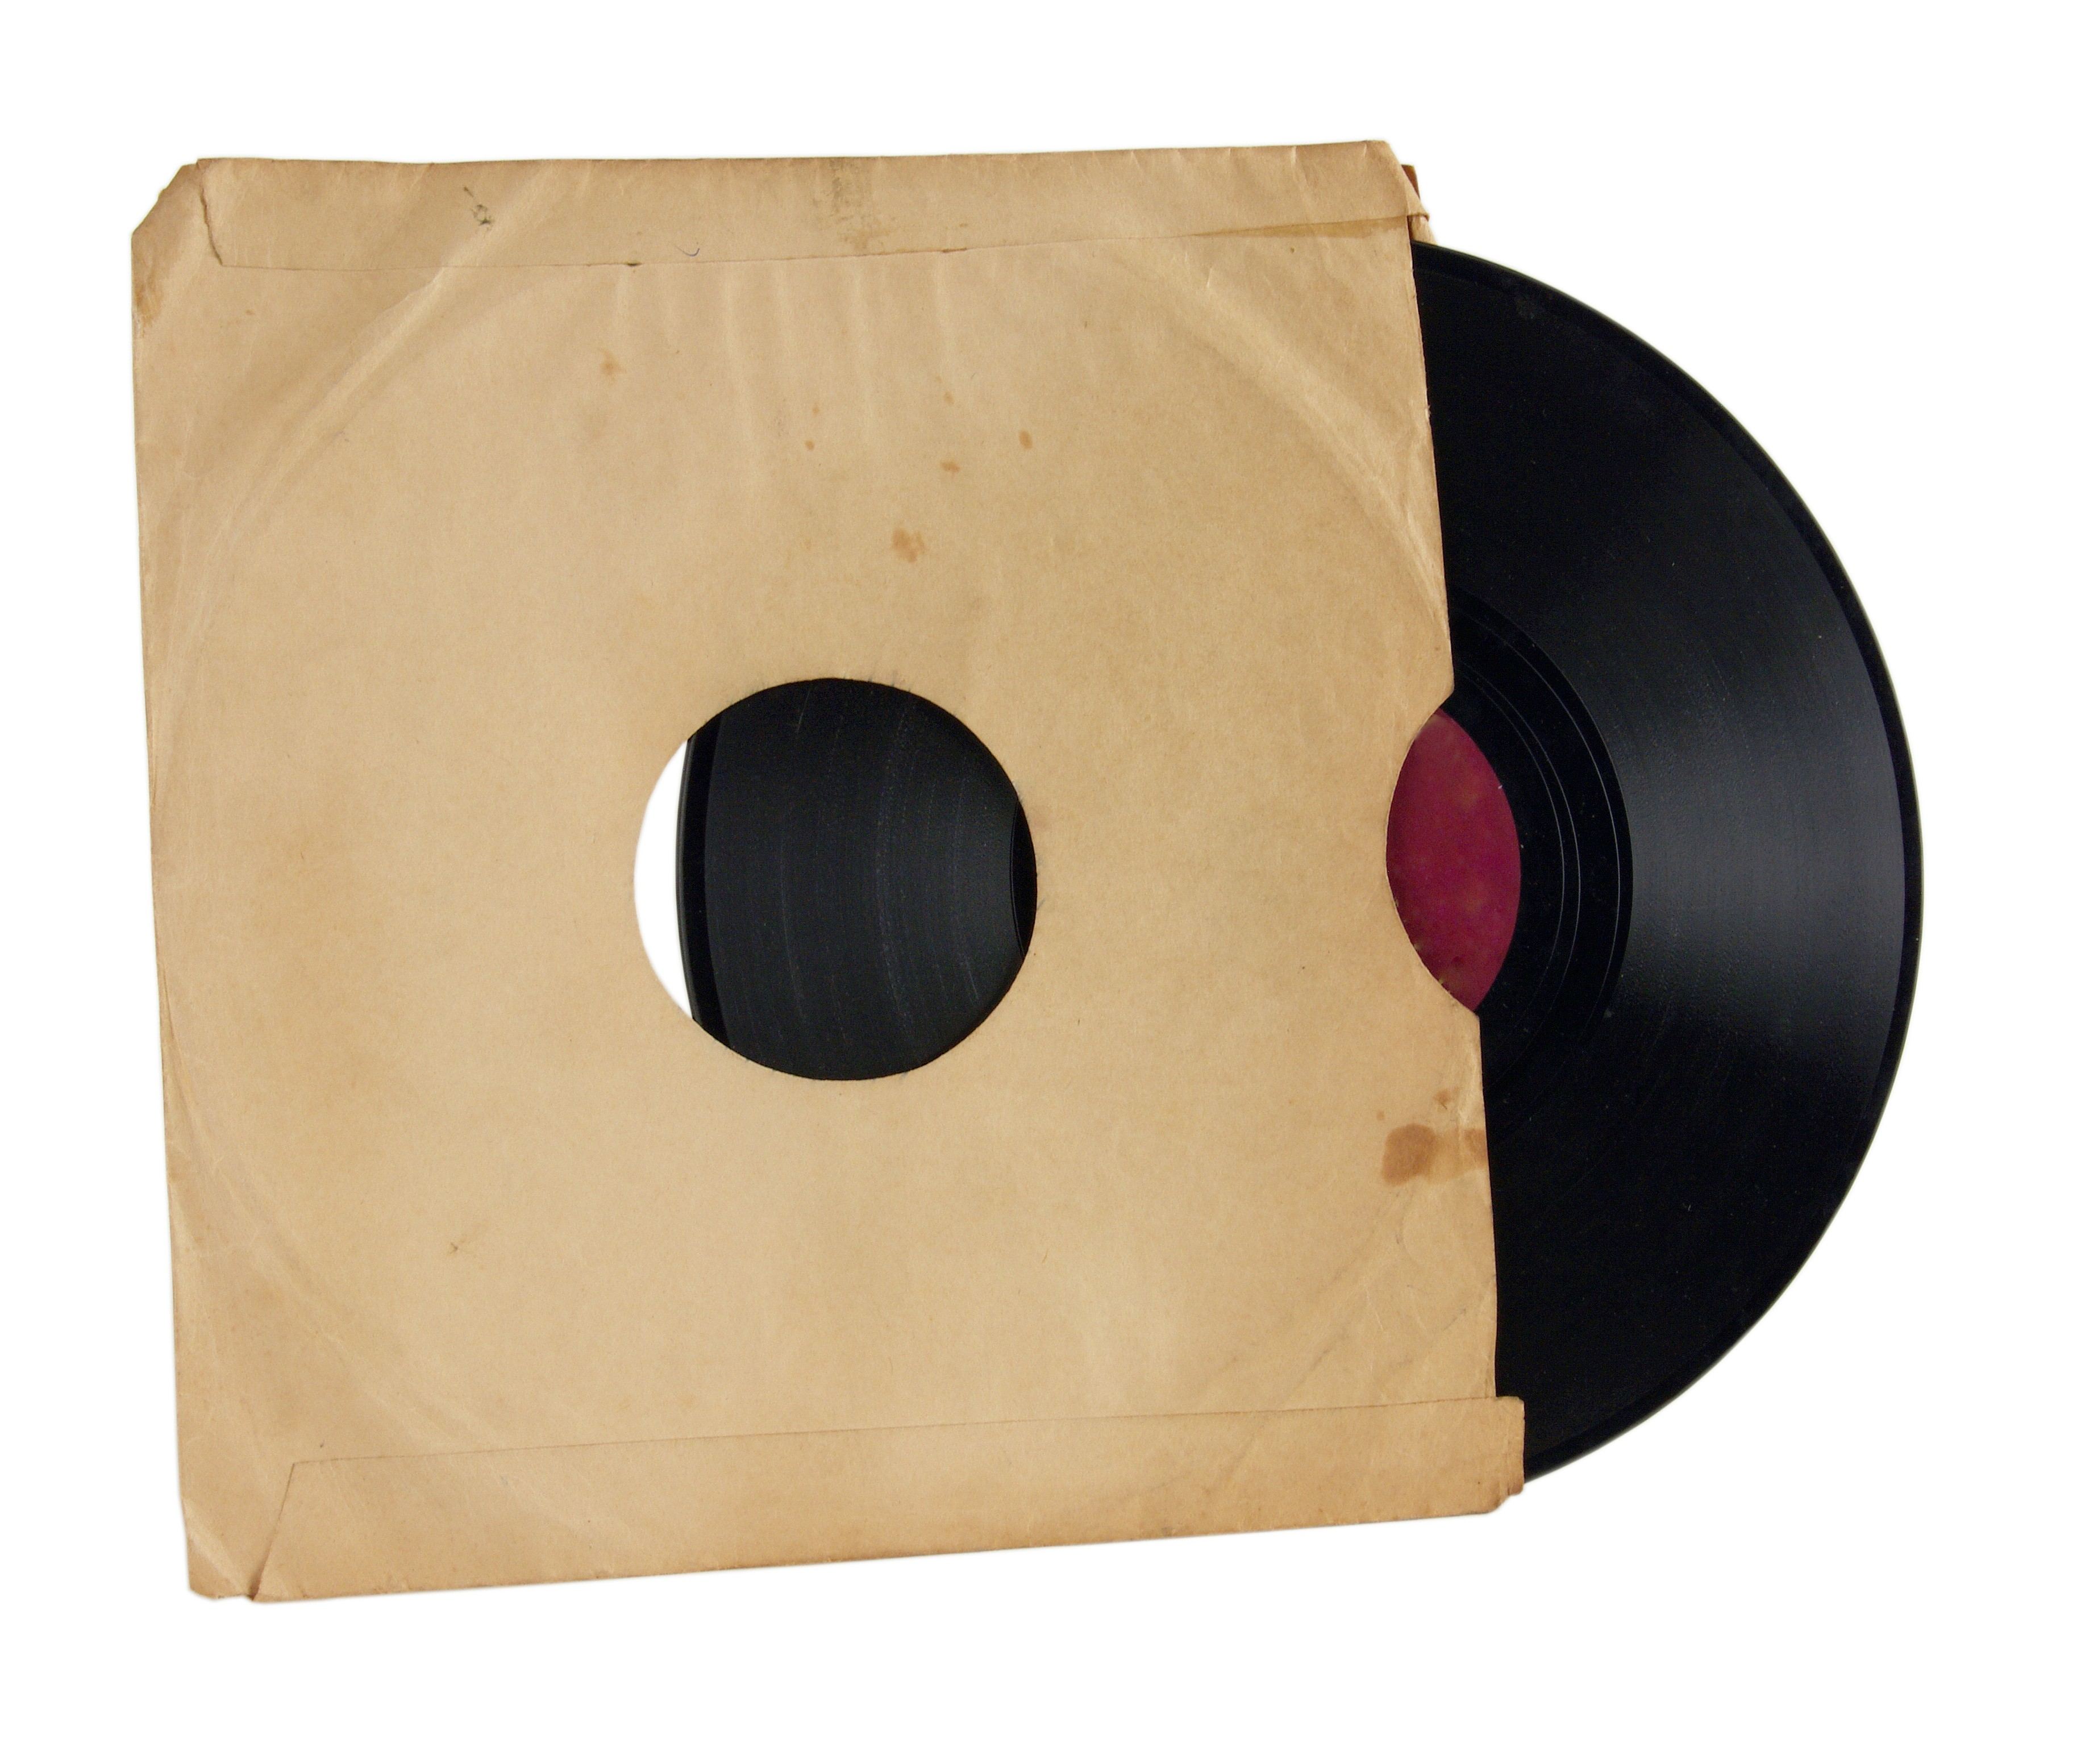 Old Record In Old Paper Other